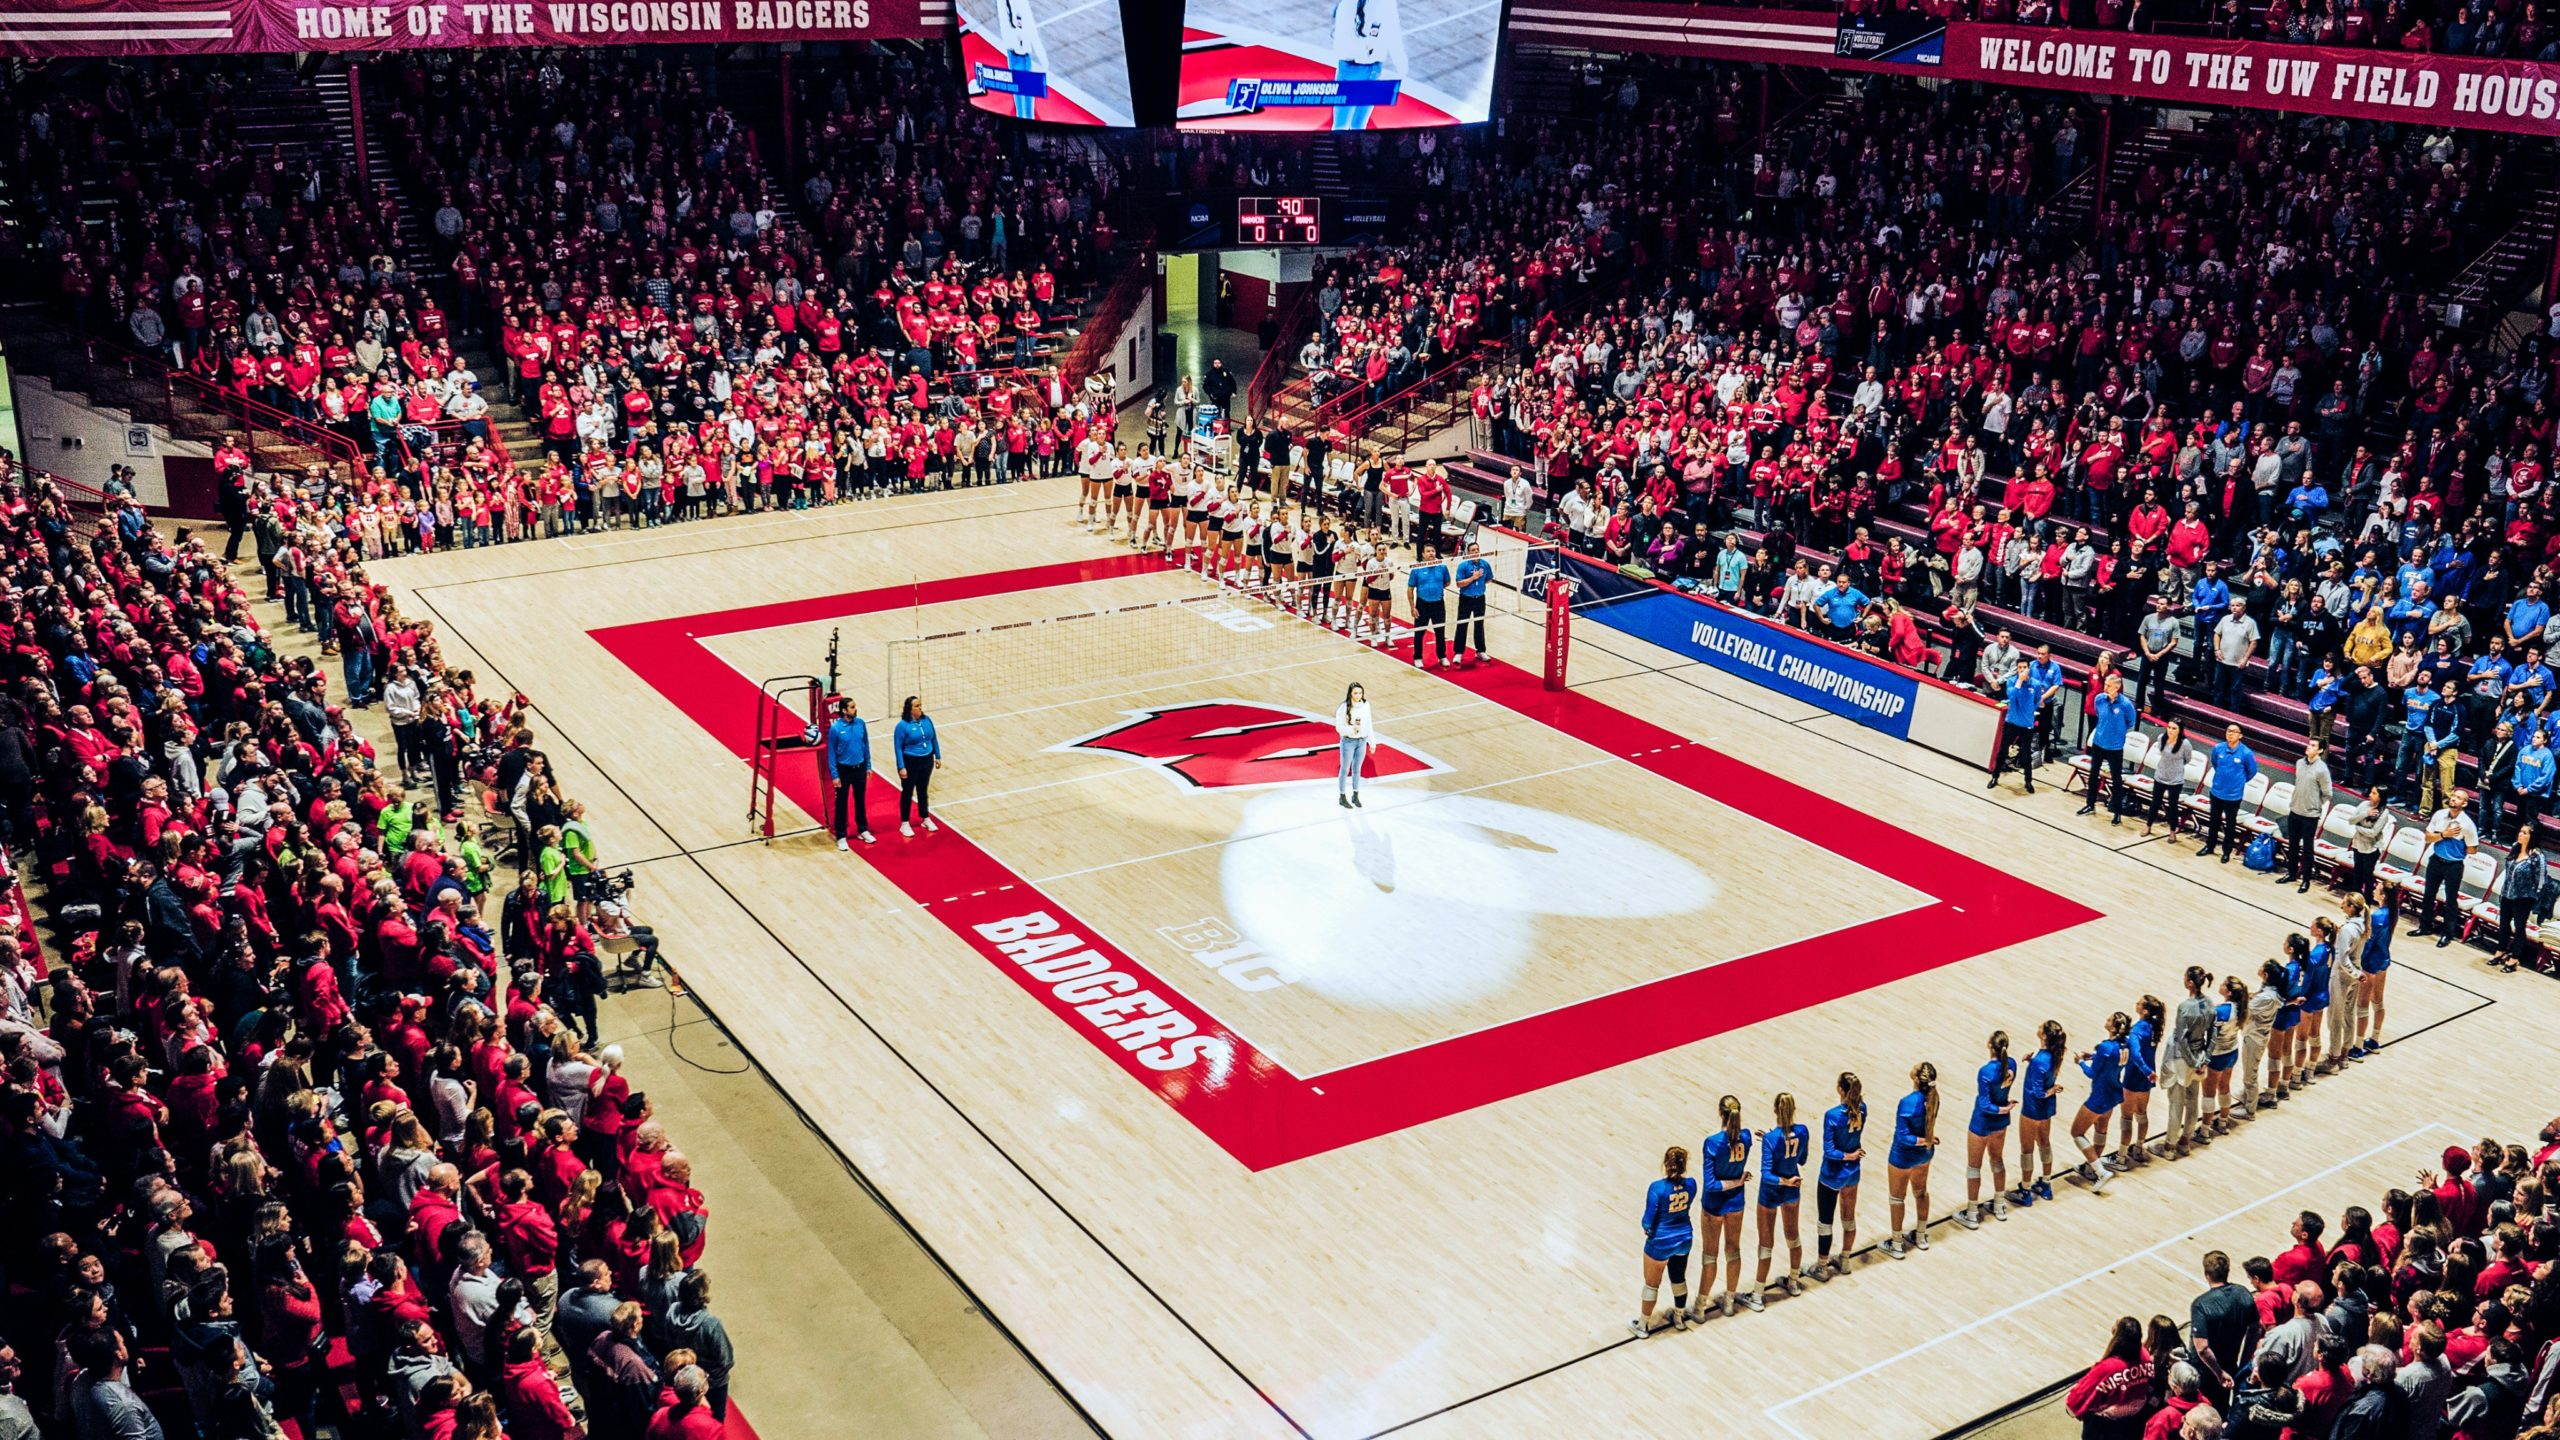 Ncaa Tourney Volleyball Teams Including Badgers To Have Open Practice Thursday In Madison Wkty